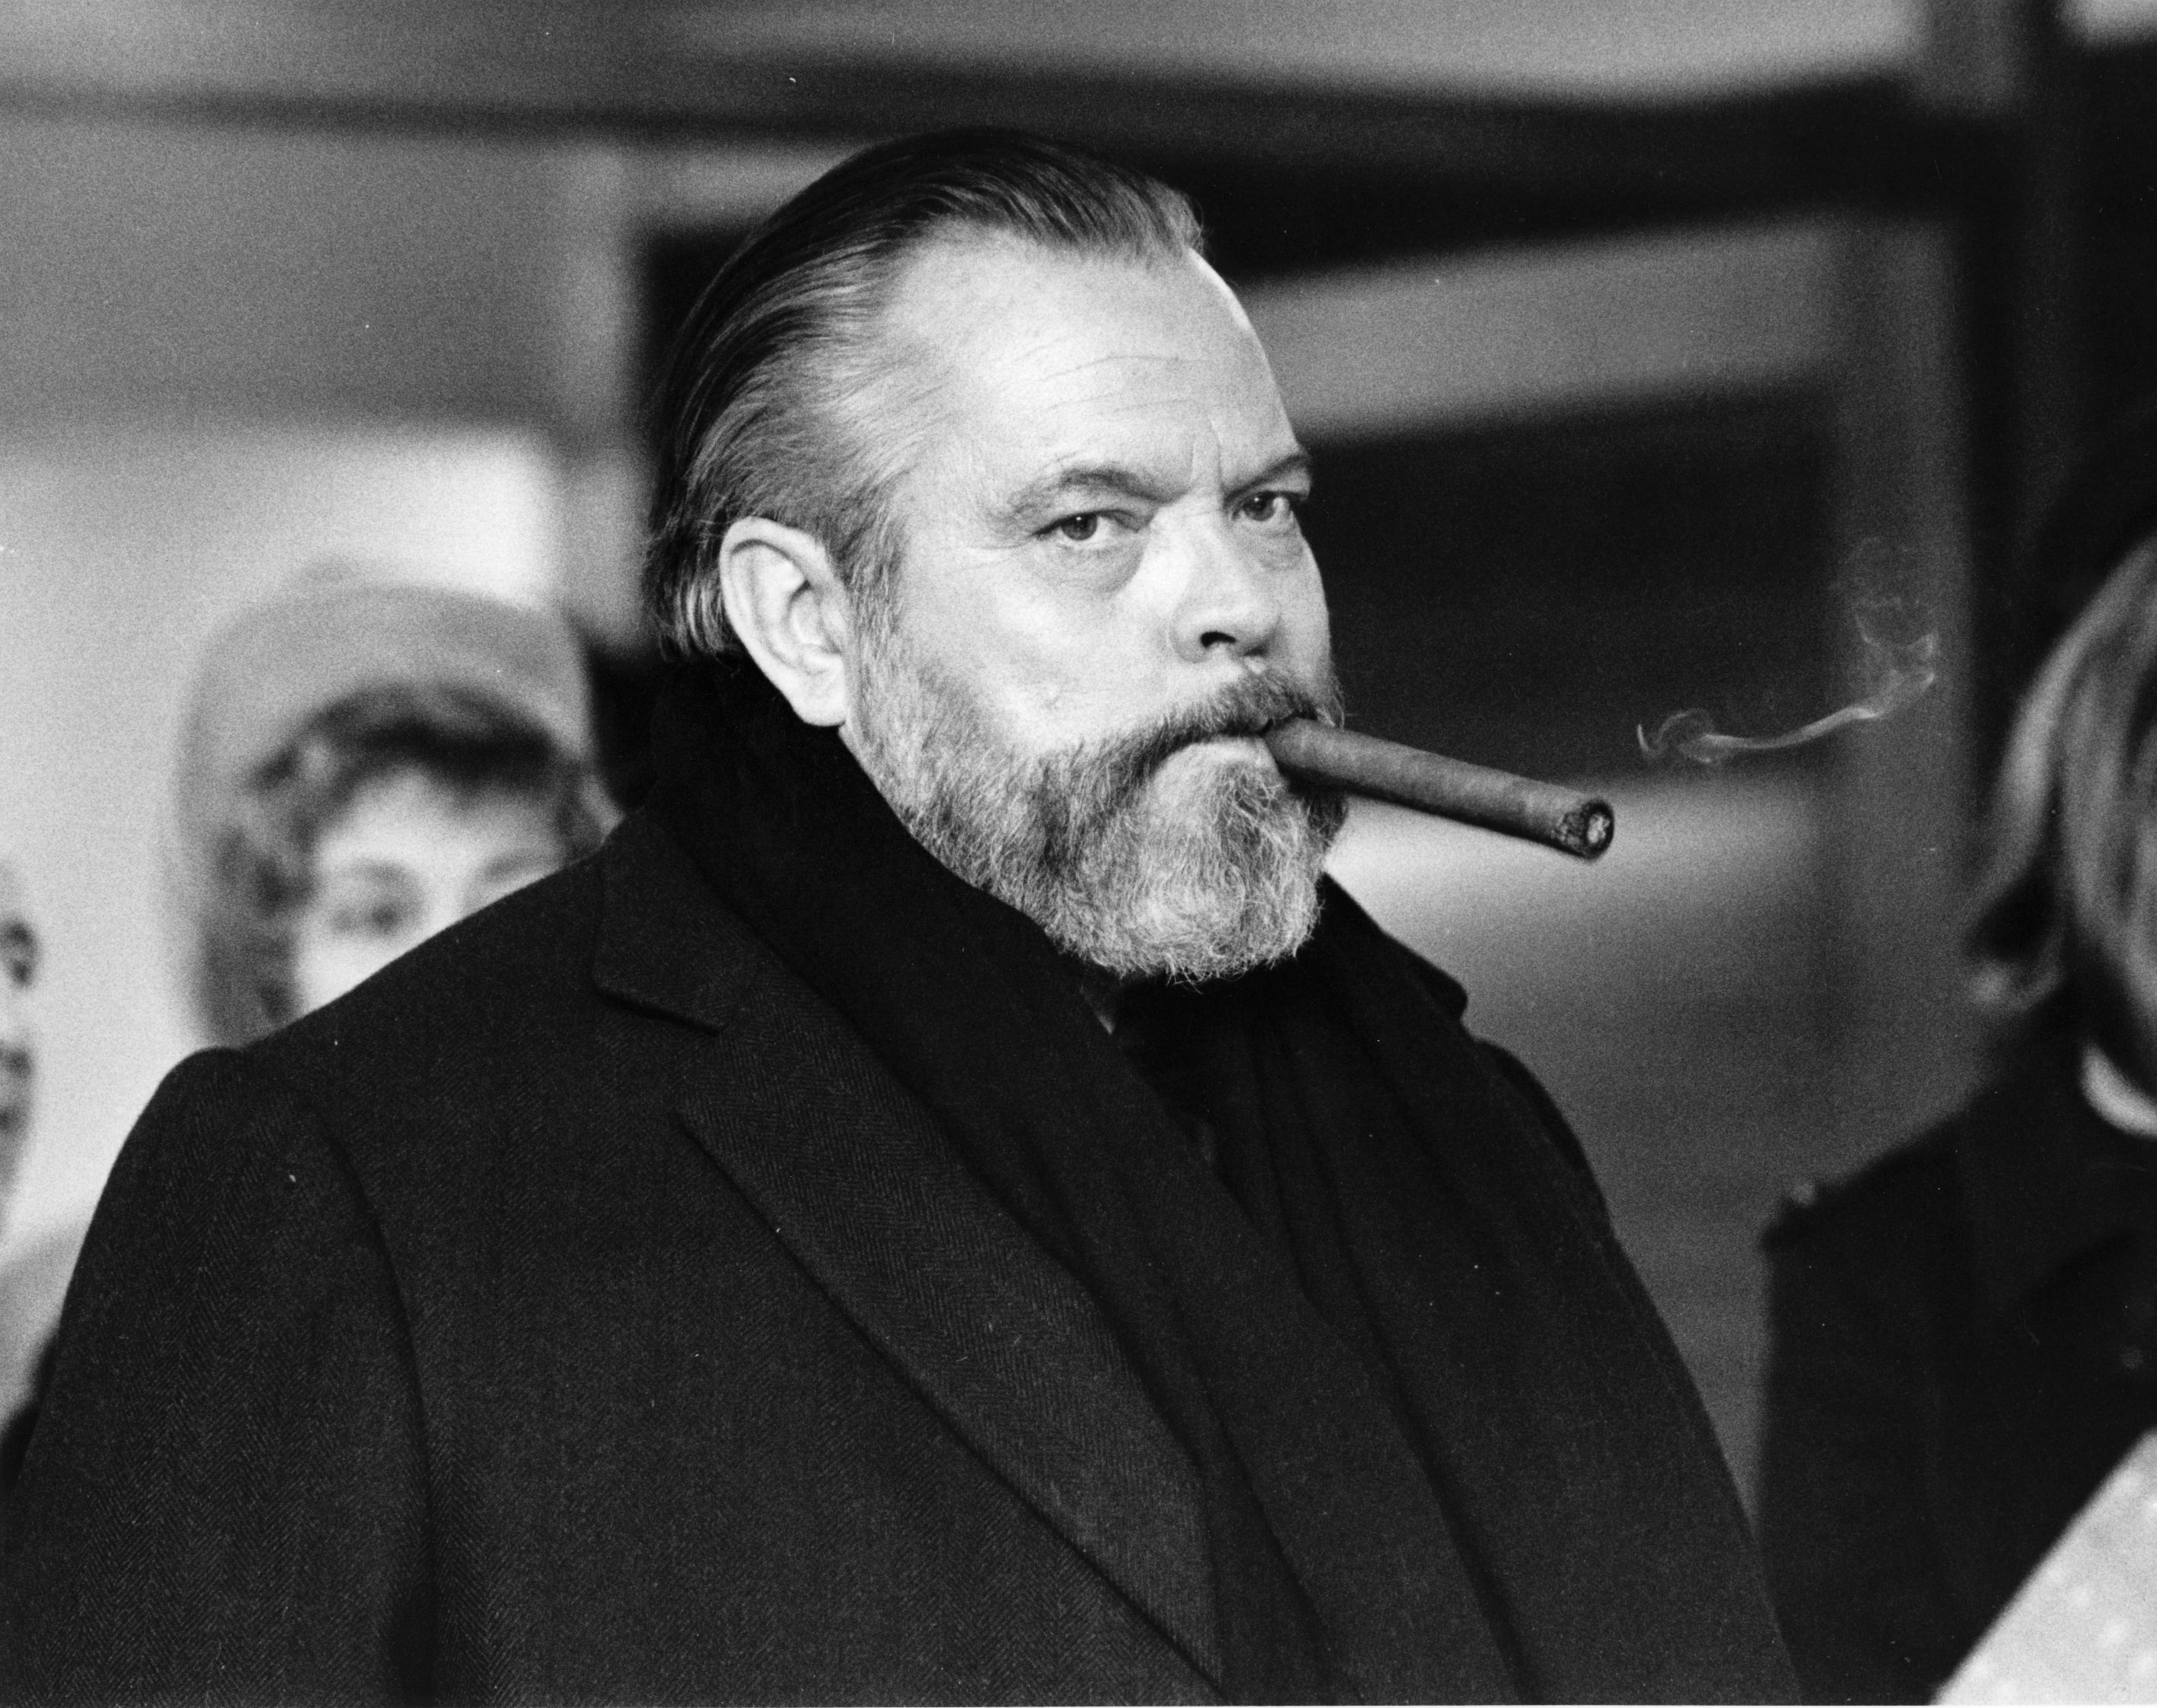 Orson Welles (1915 - 1985), American actor, producer, writer and director.